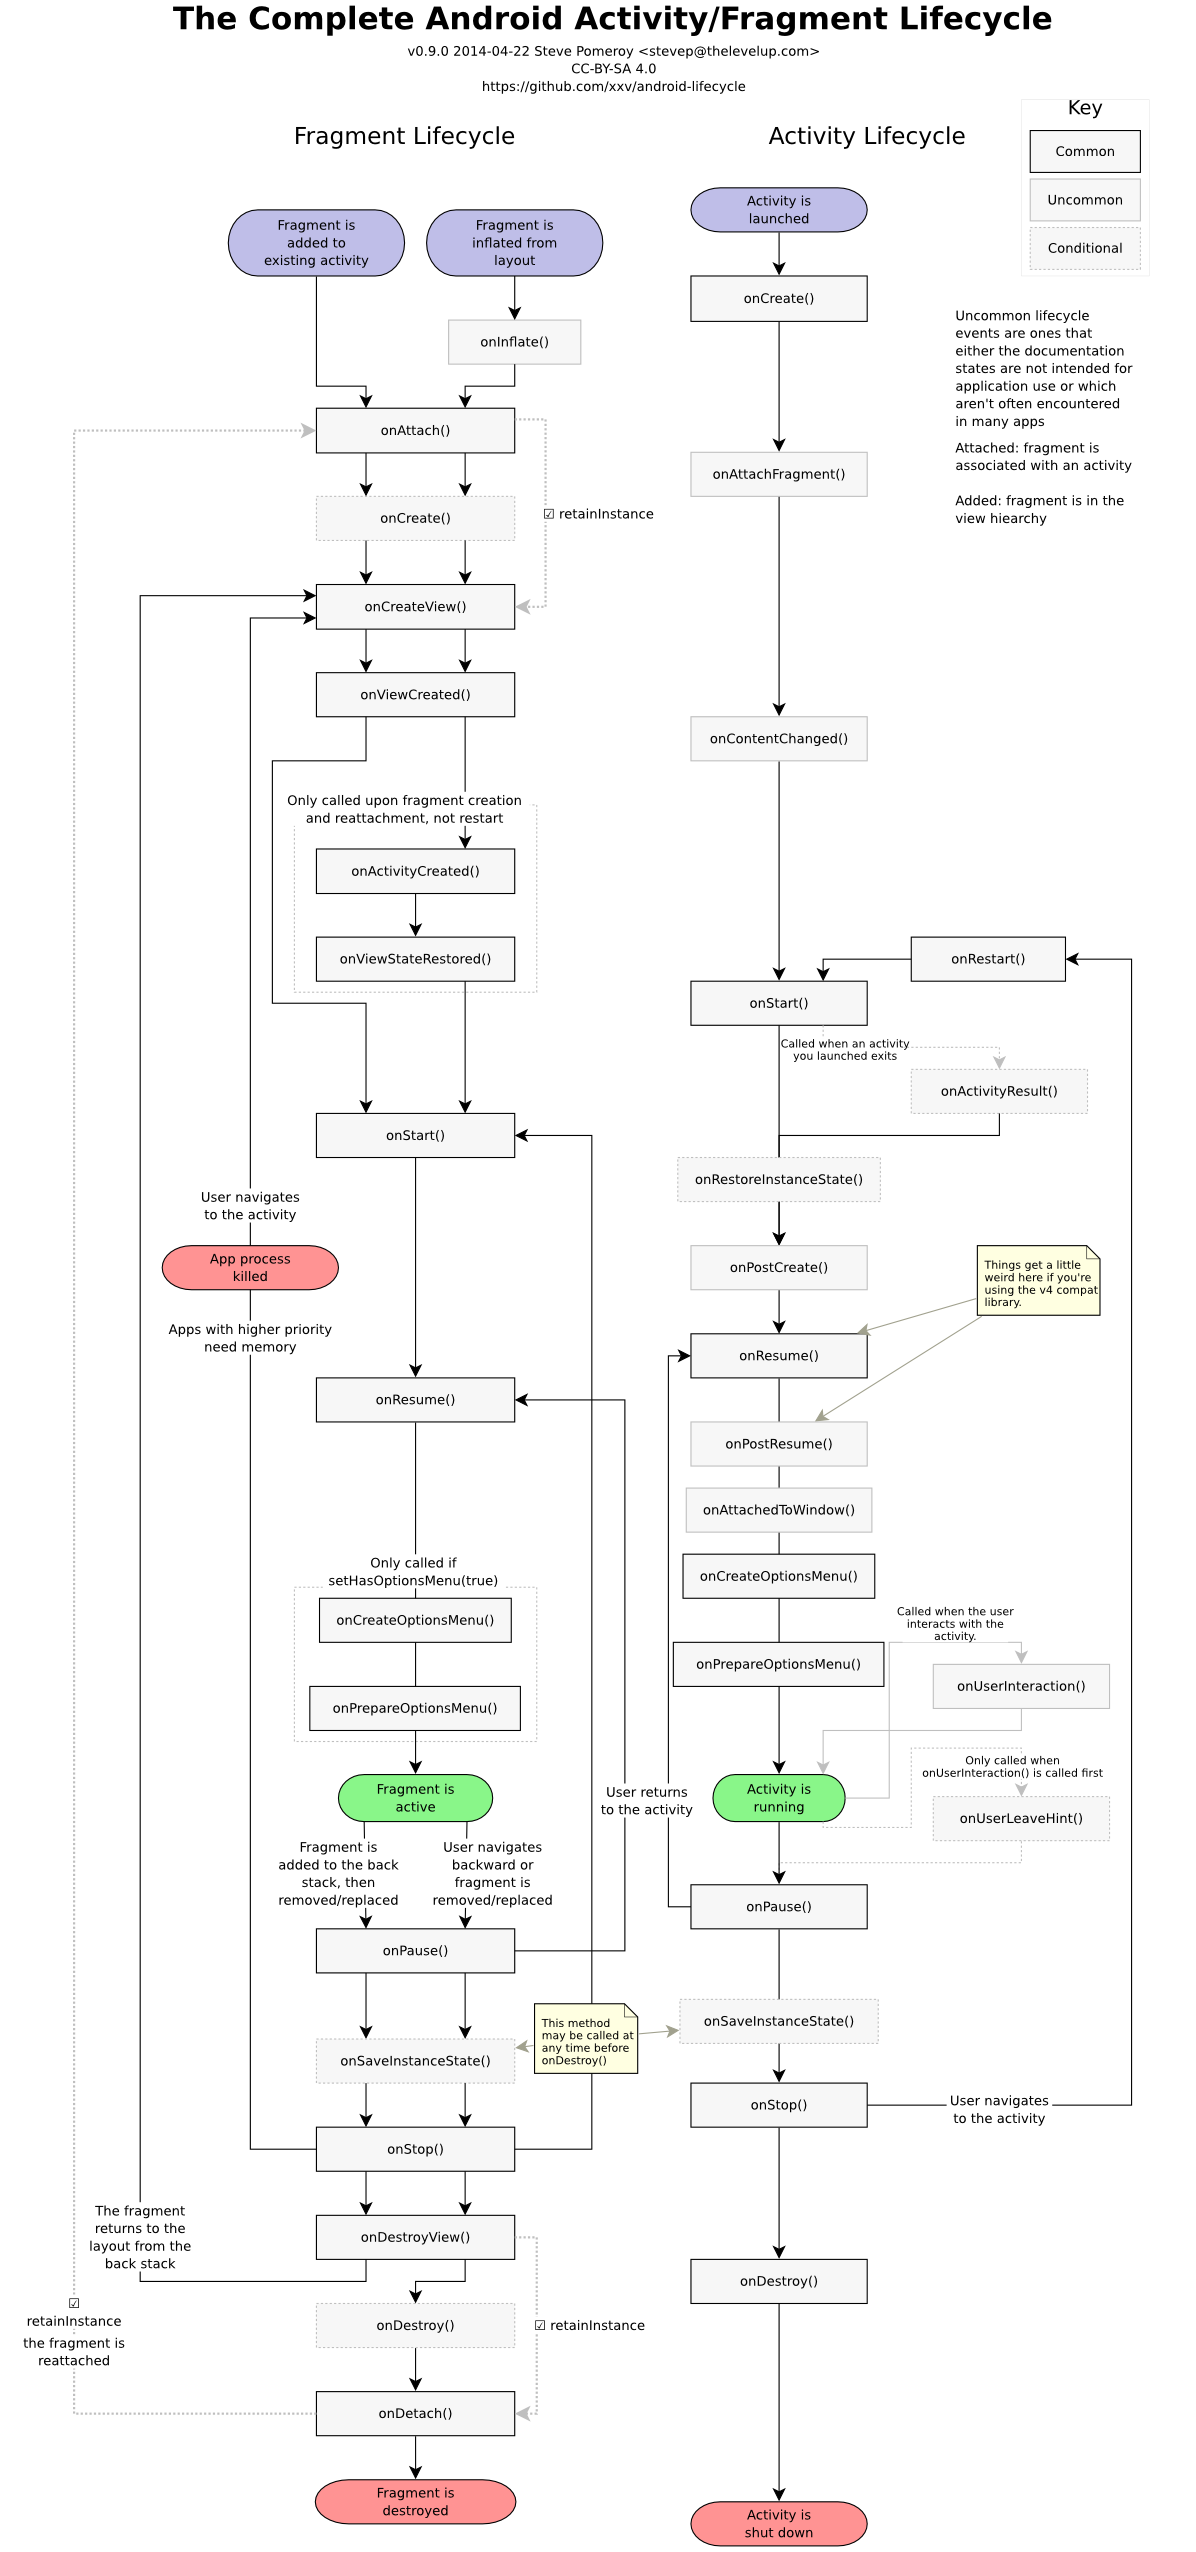 eim:laboratoare:laborator04:complete_android_fragment_lifecycle.png